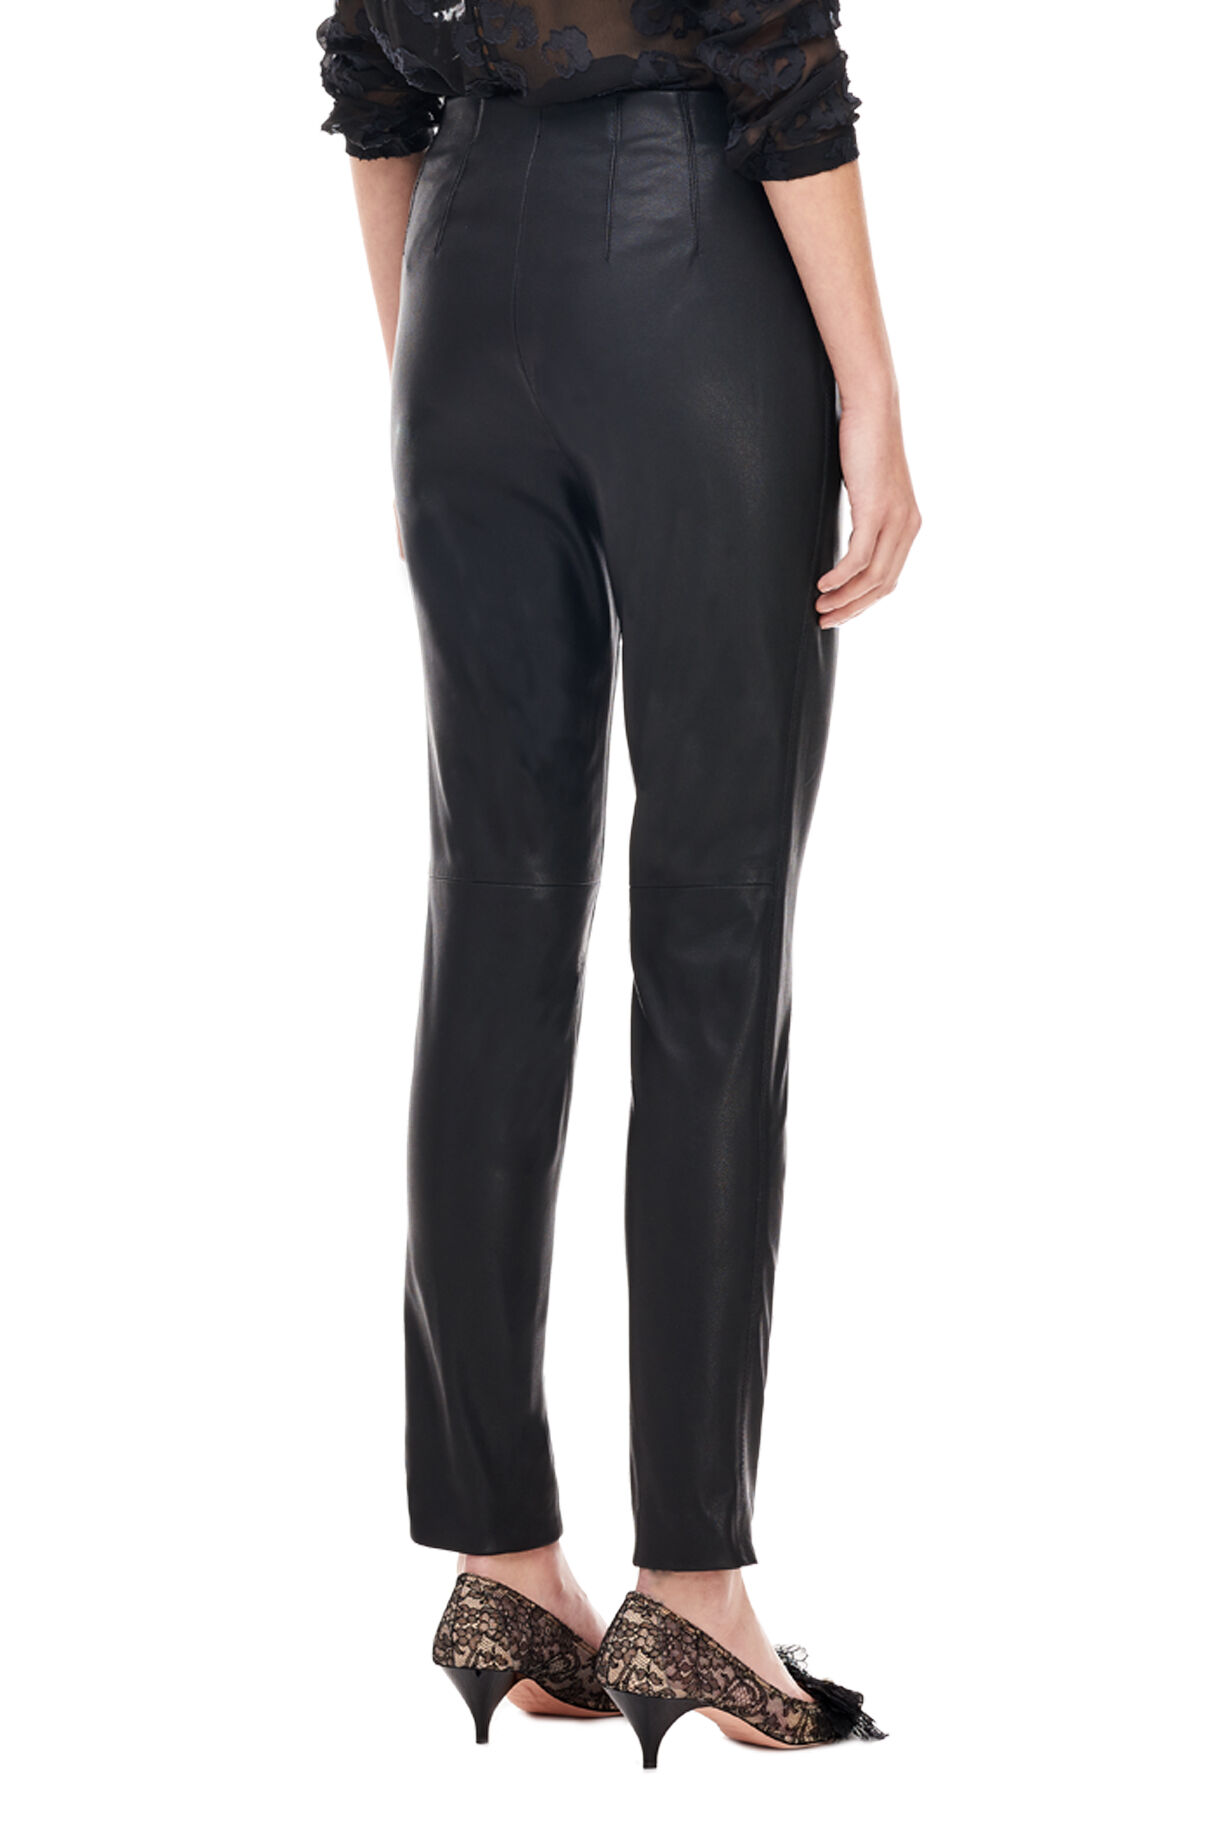 Find great deals on eBay for vegan leather pants. Shop with confidence.